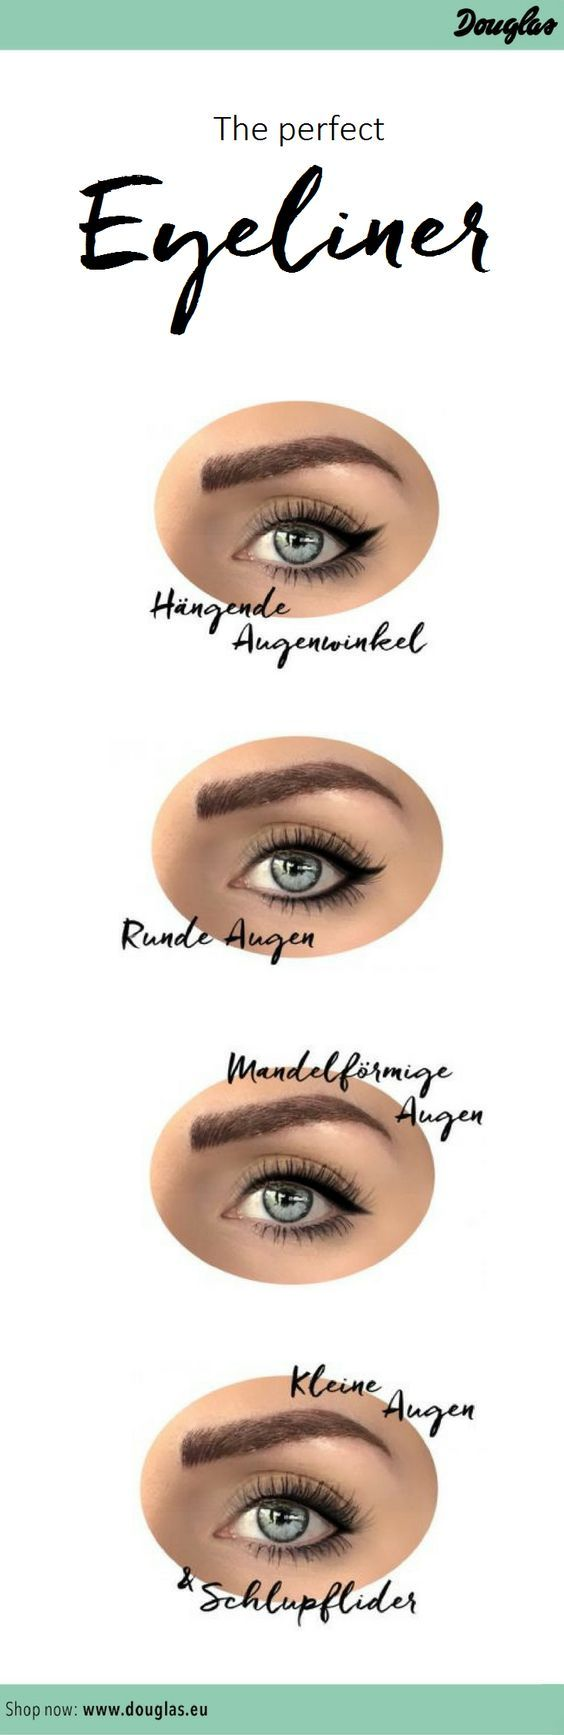 best 25 eyebrow quotes ideas on pinterest brow quotes brow waxing near me and beauty quotes. Black Bedroom Furniture Sets. Home Design Ideas